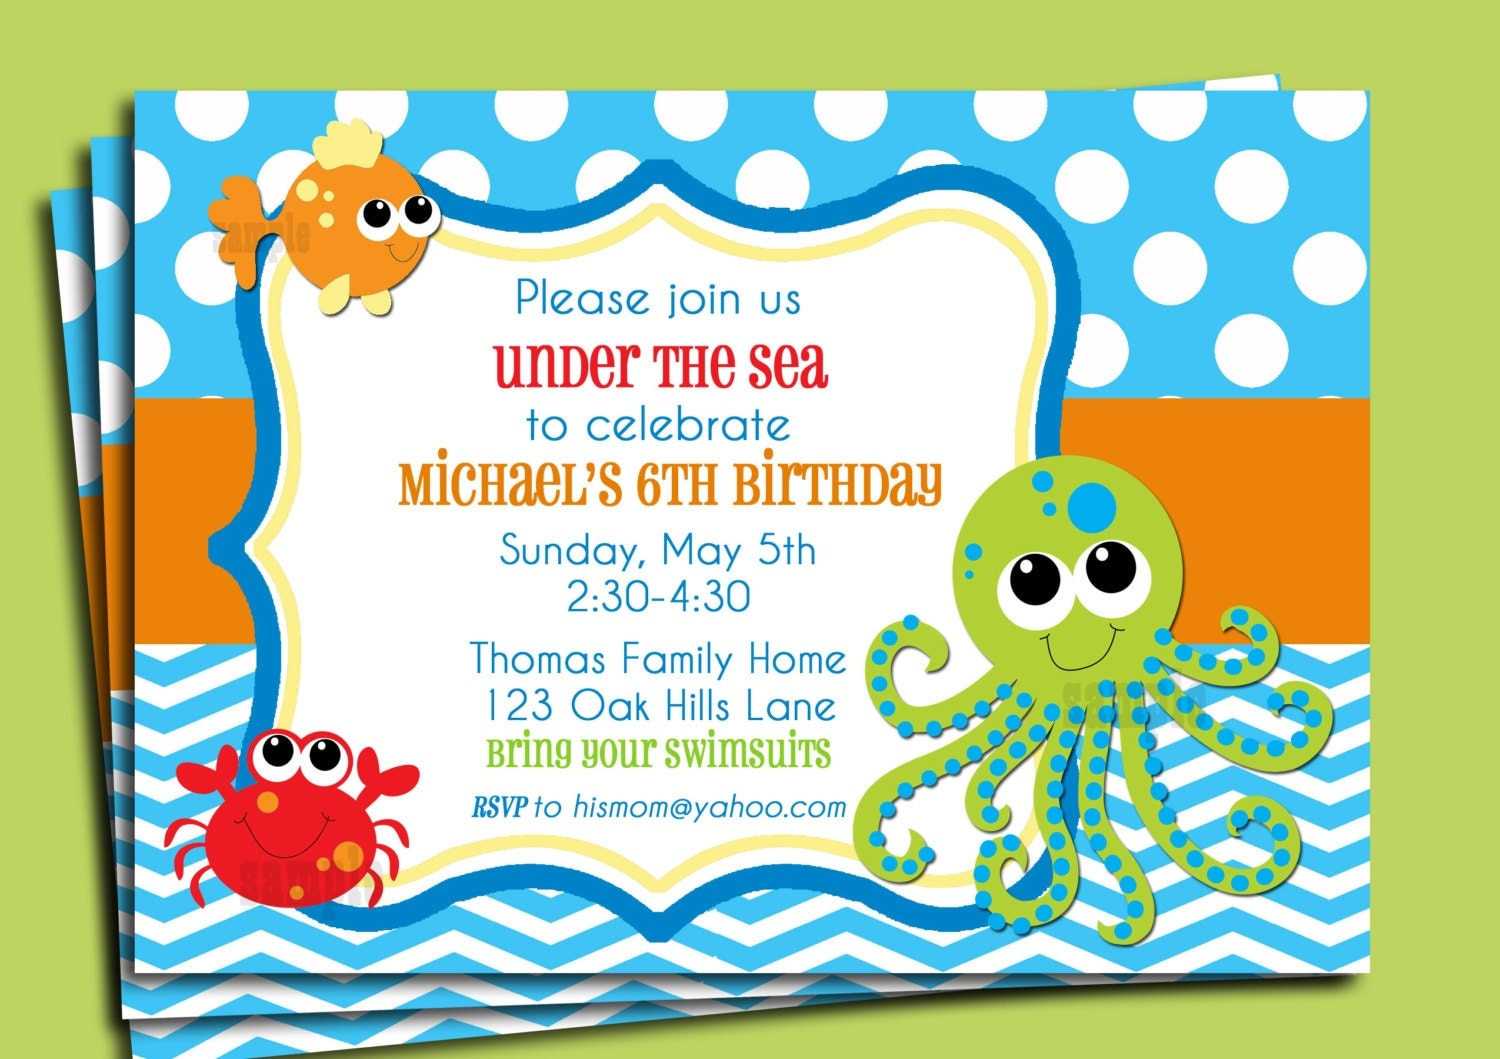 under the sea invitation printable or printed with free, Birthday invitations